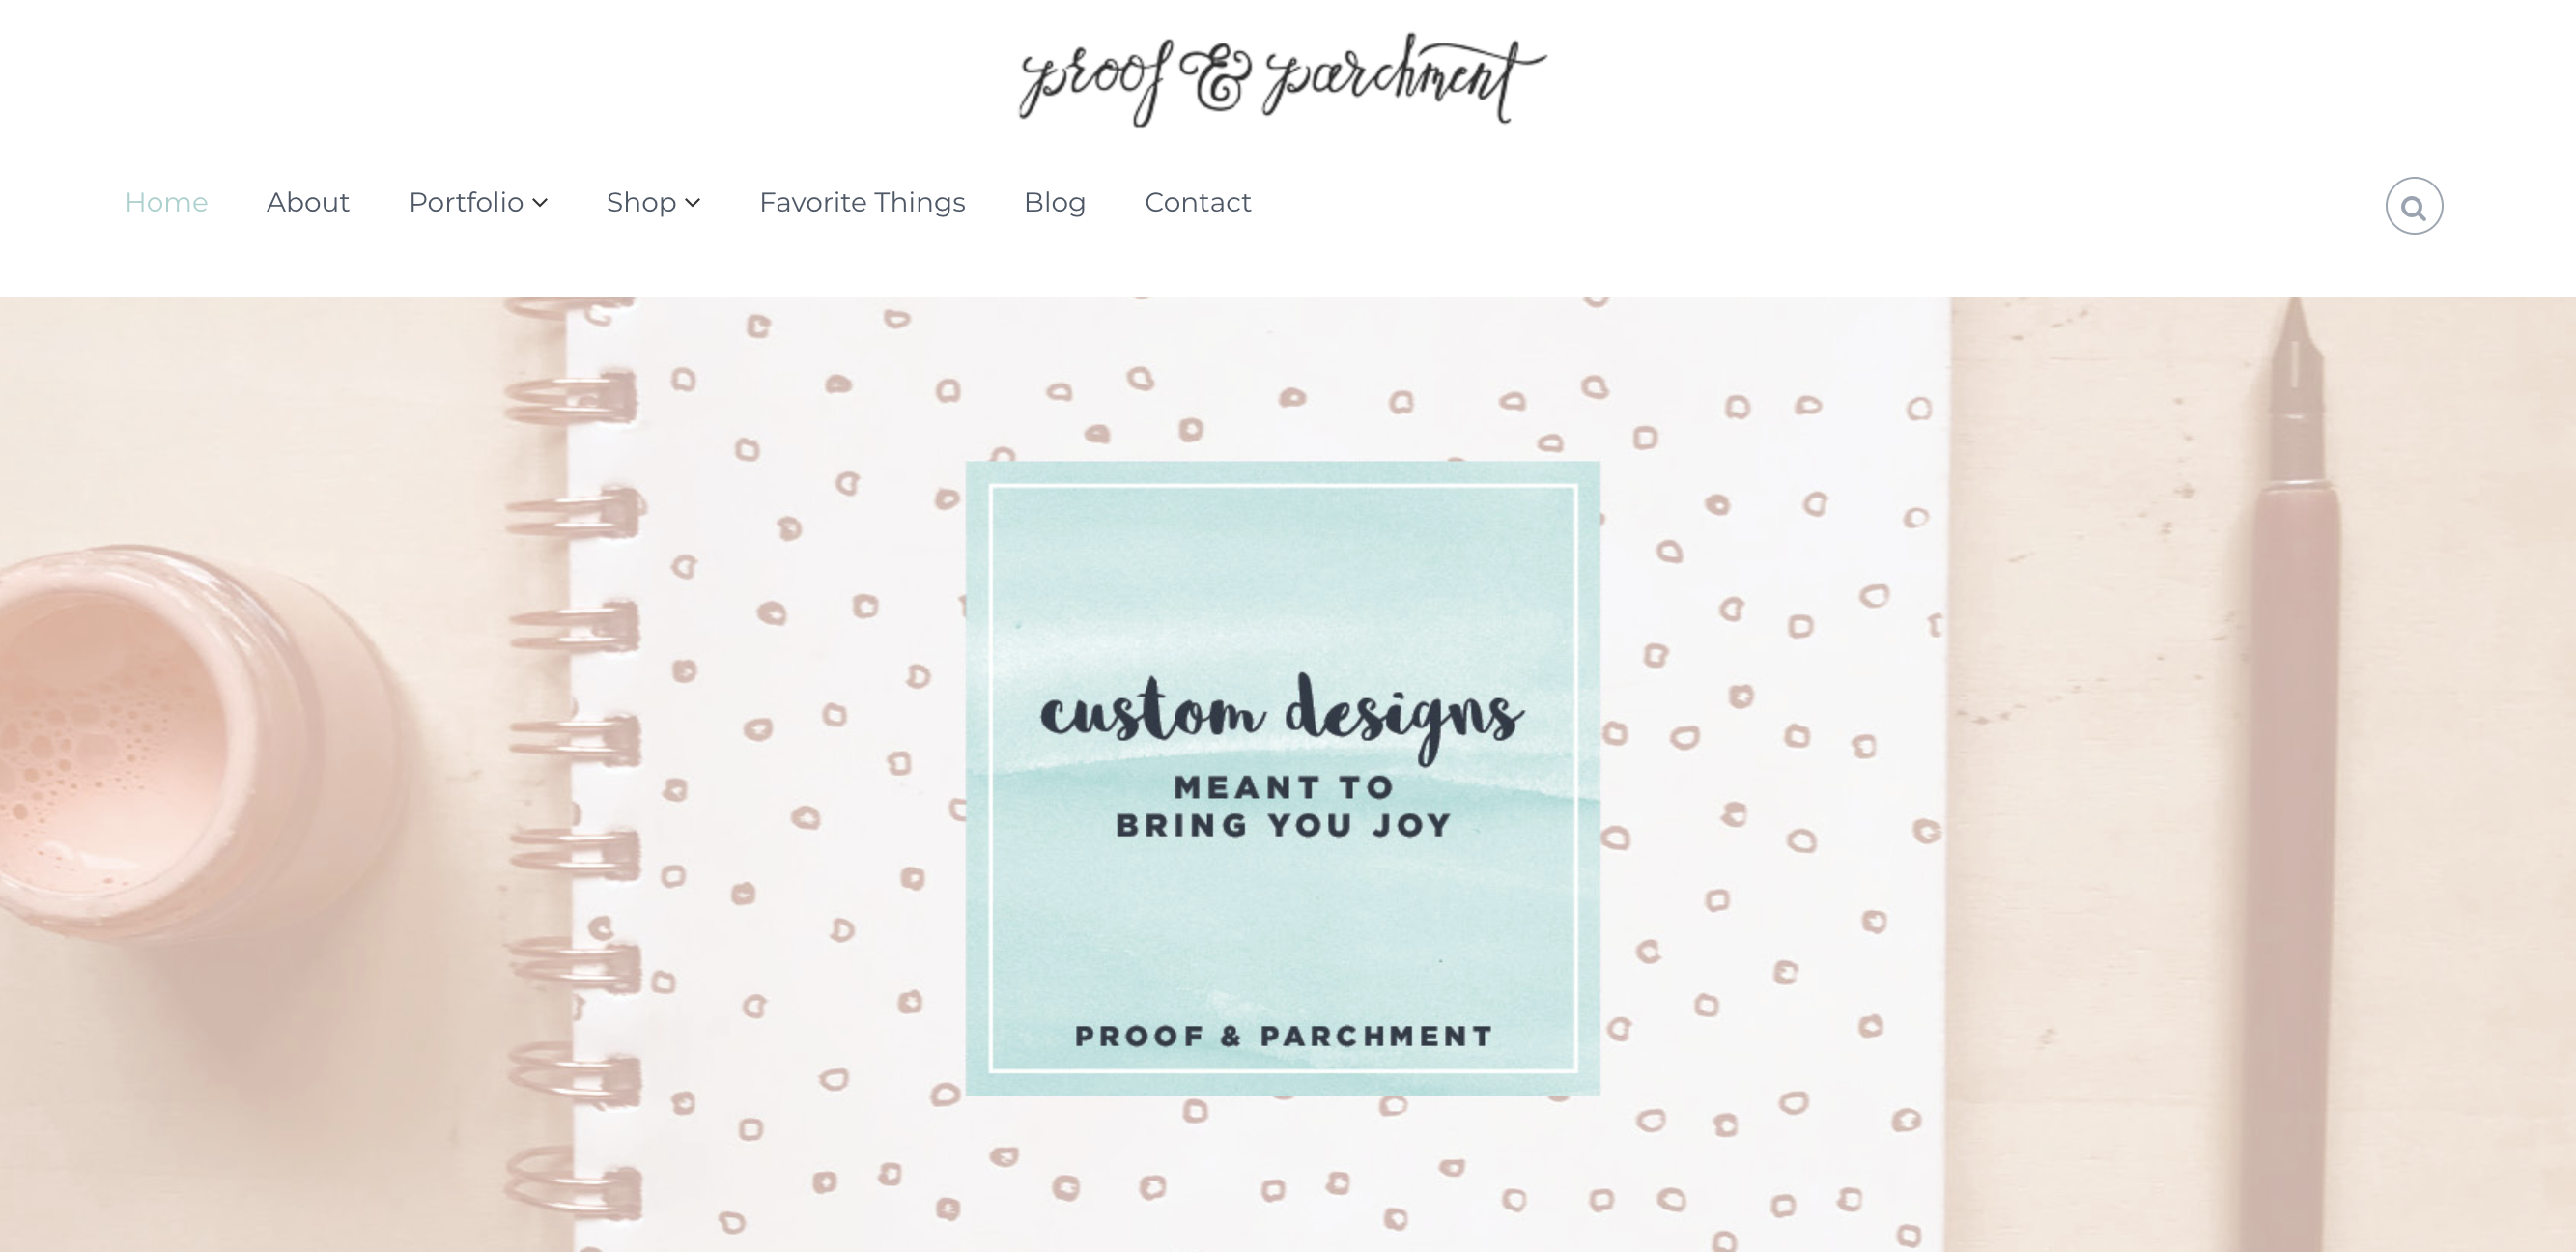 Proof & Parchment branding example on website